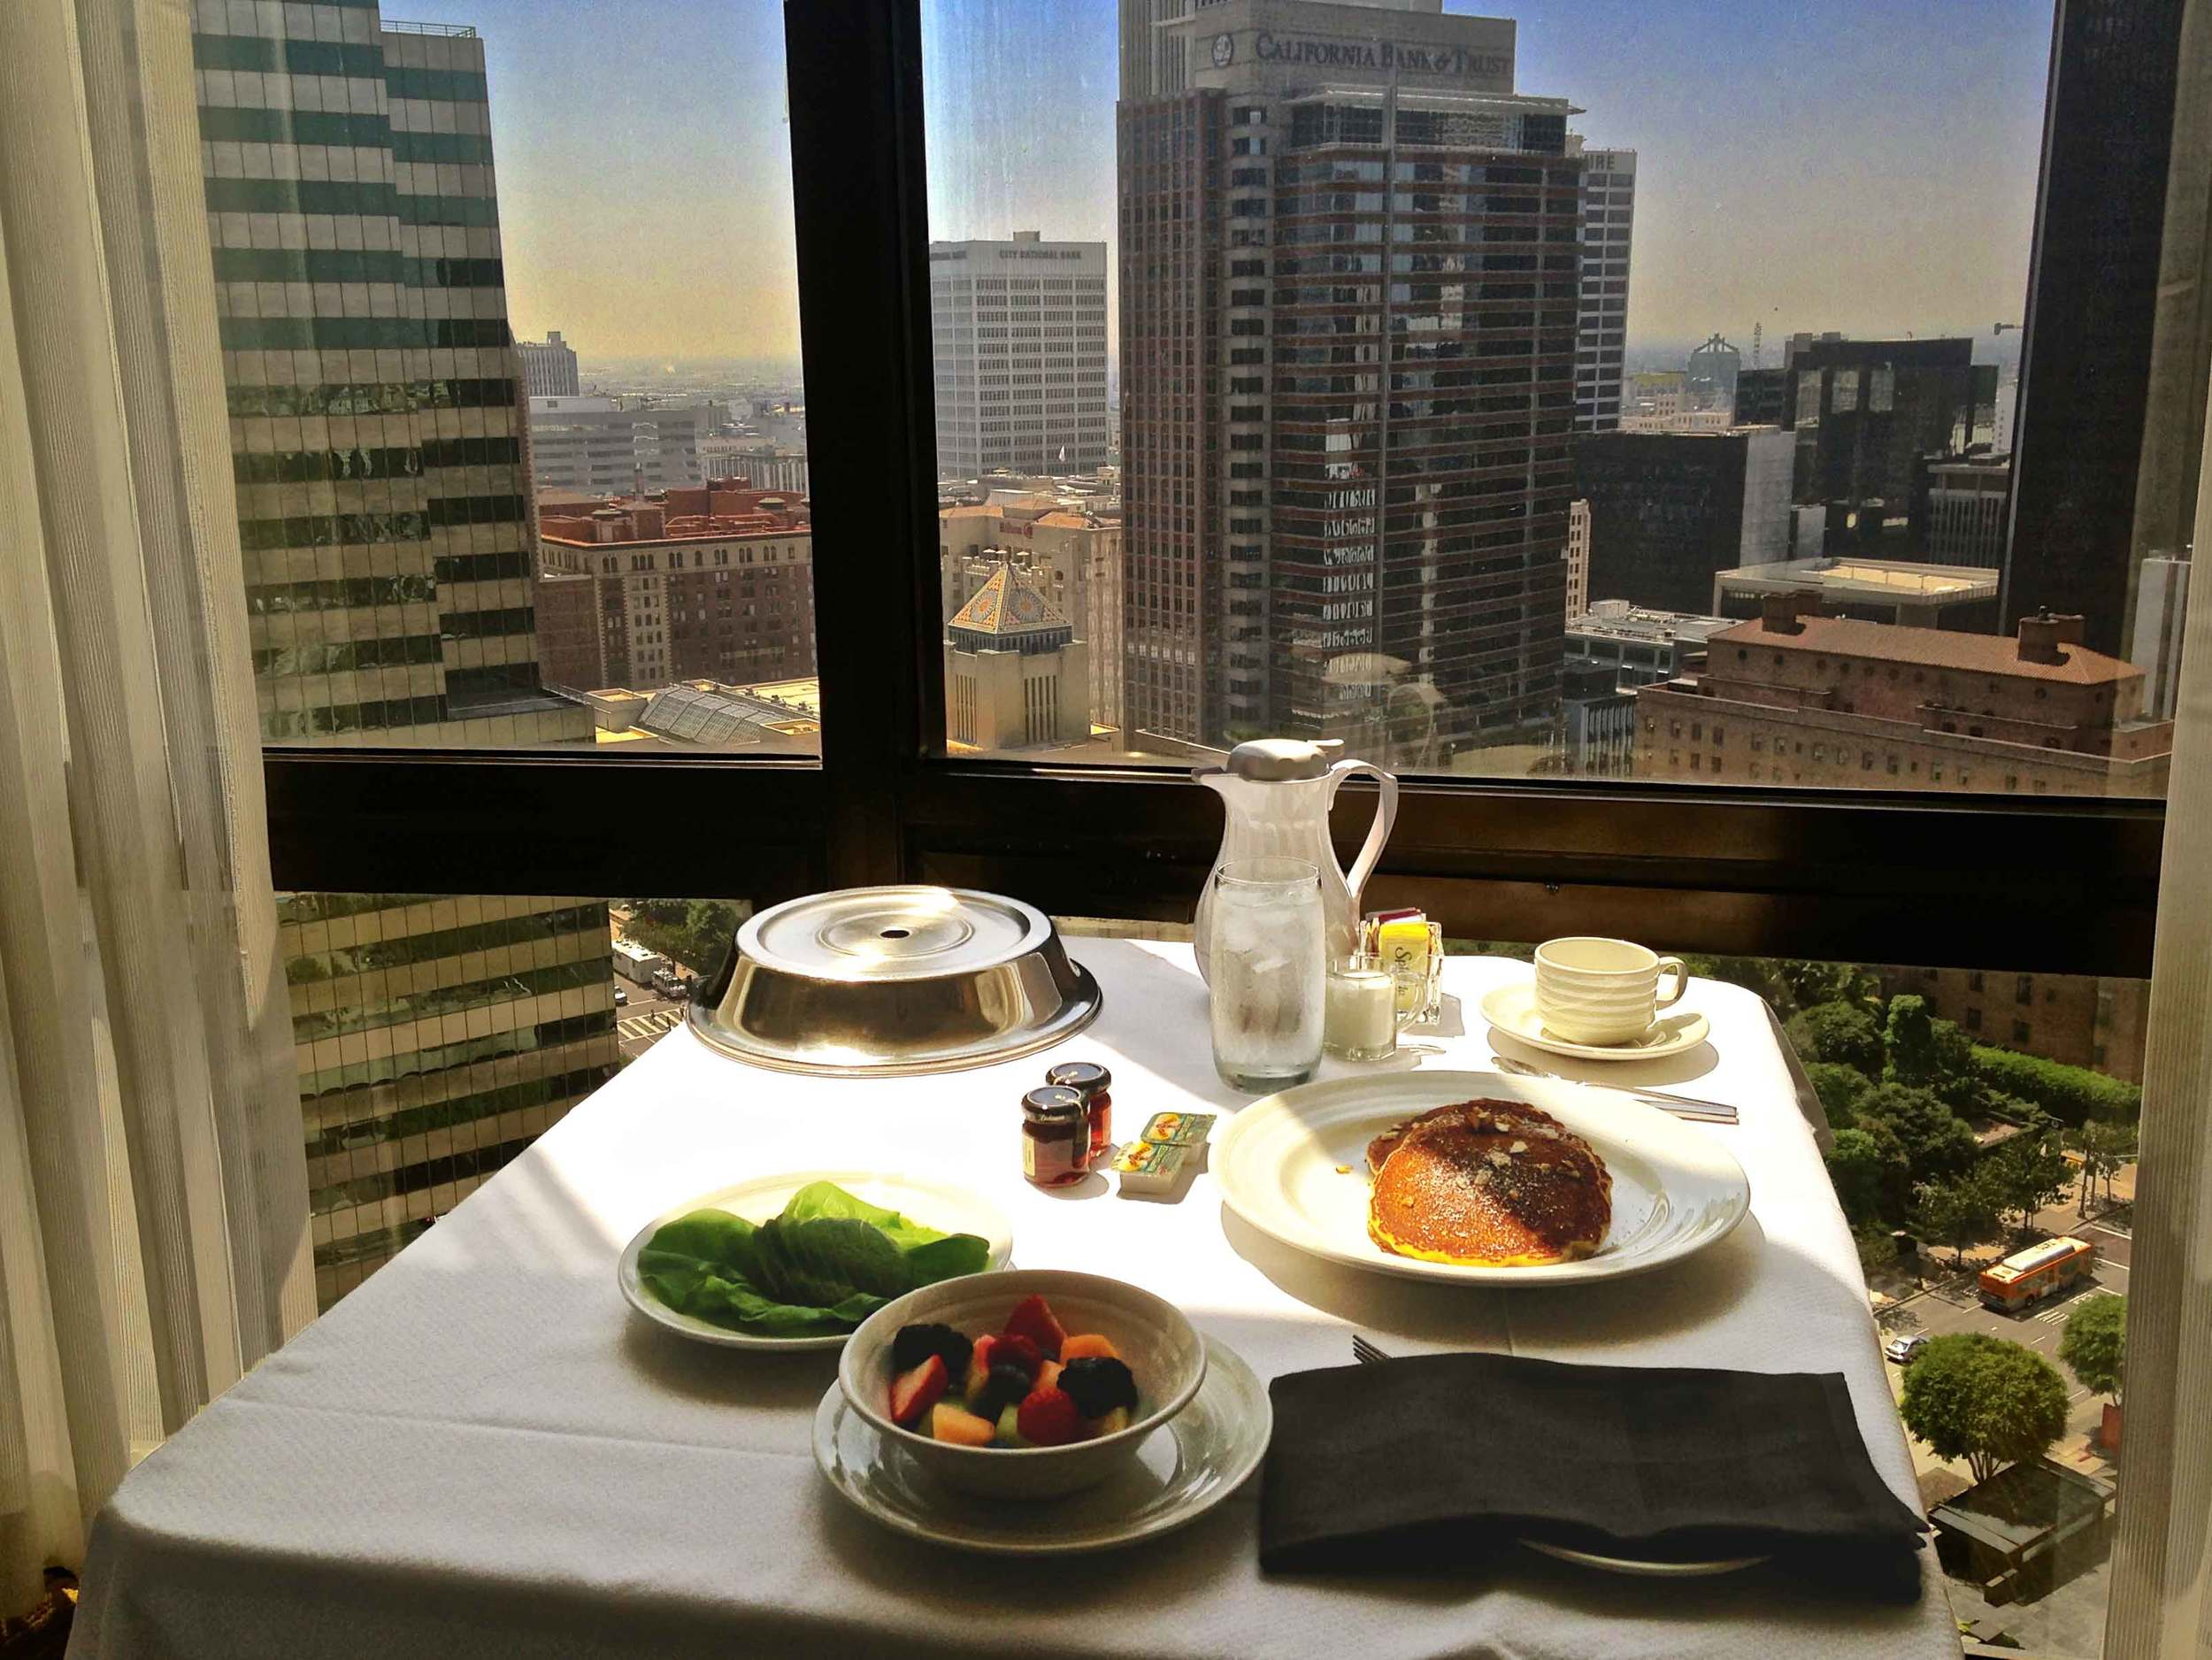 Breakfast in room, in-room dining, Westin Bonaventure, L.A. Image©sourcingstyle.com